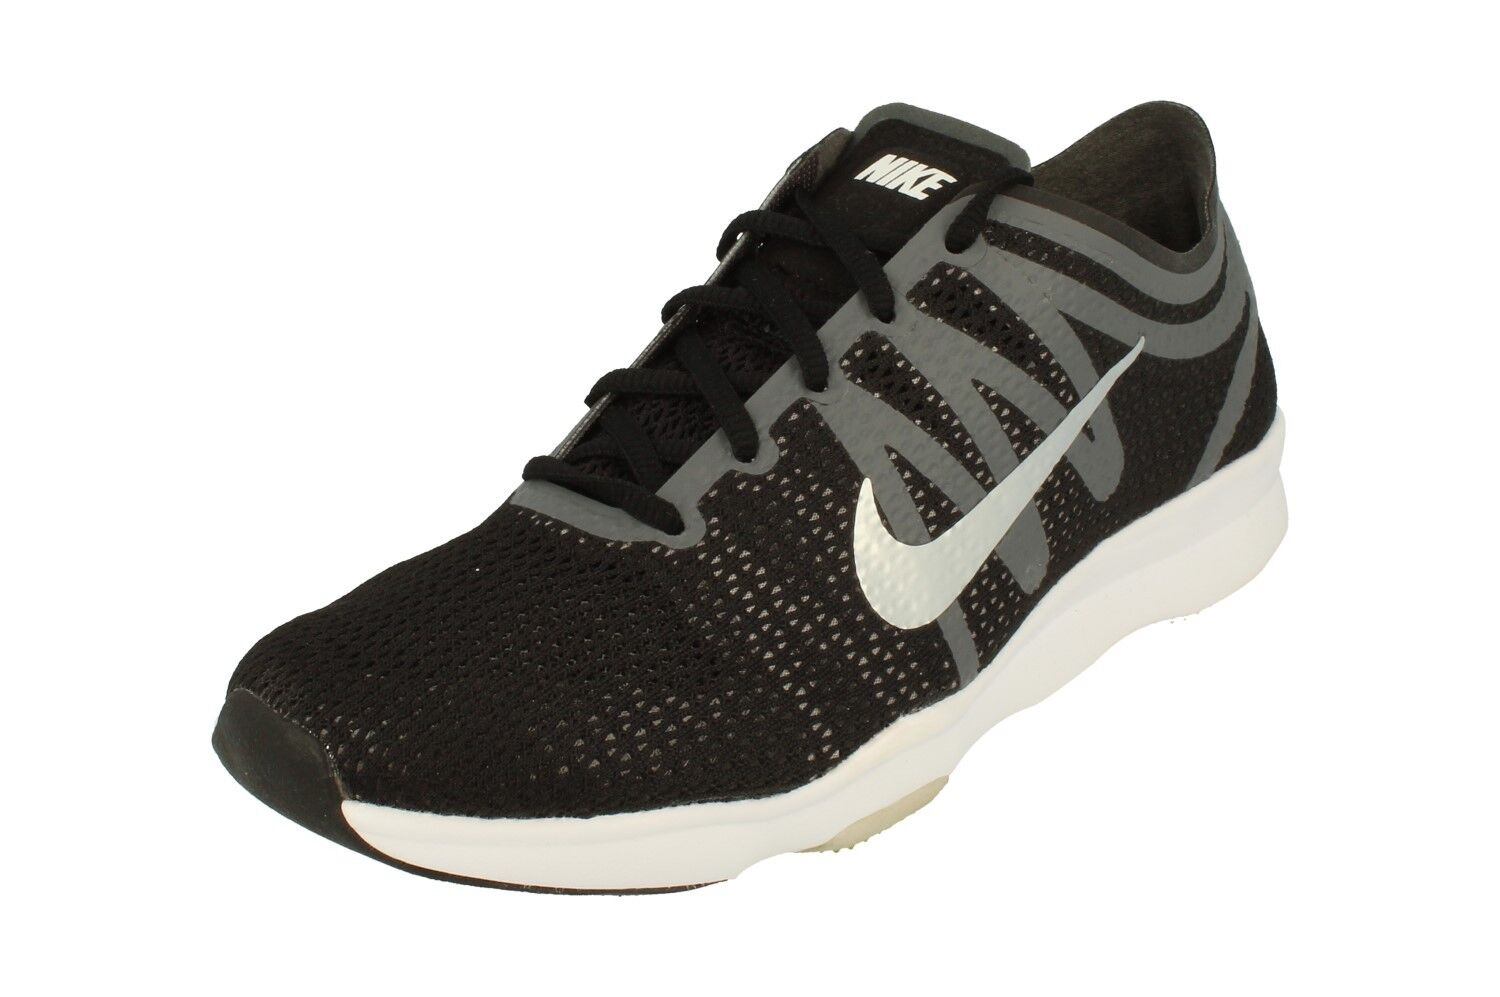 Nike Mujer Aire Zoom Fit 2 001 Zapatillas Running 819672 Zapatillas 001 2 394774